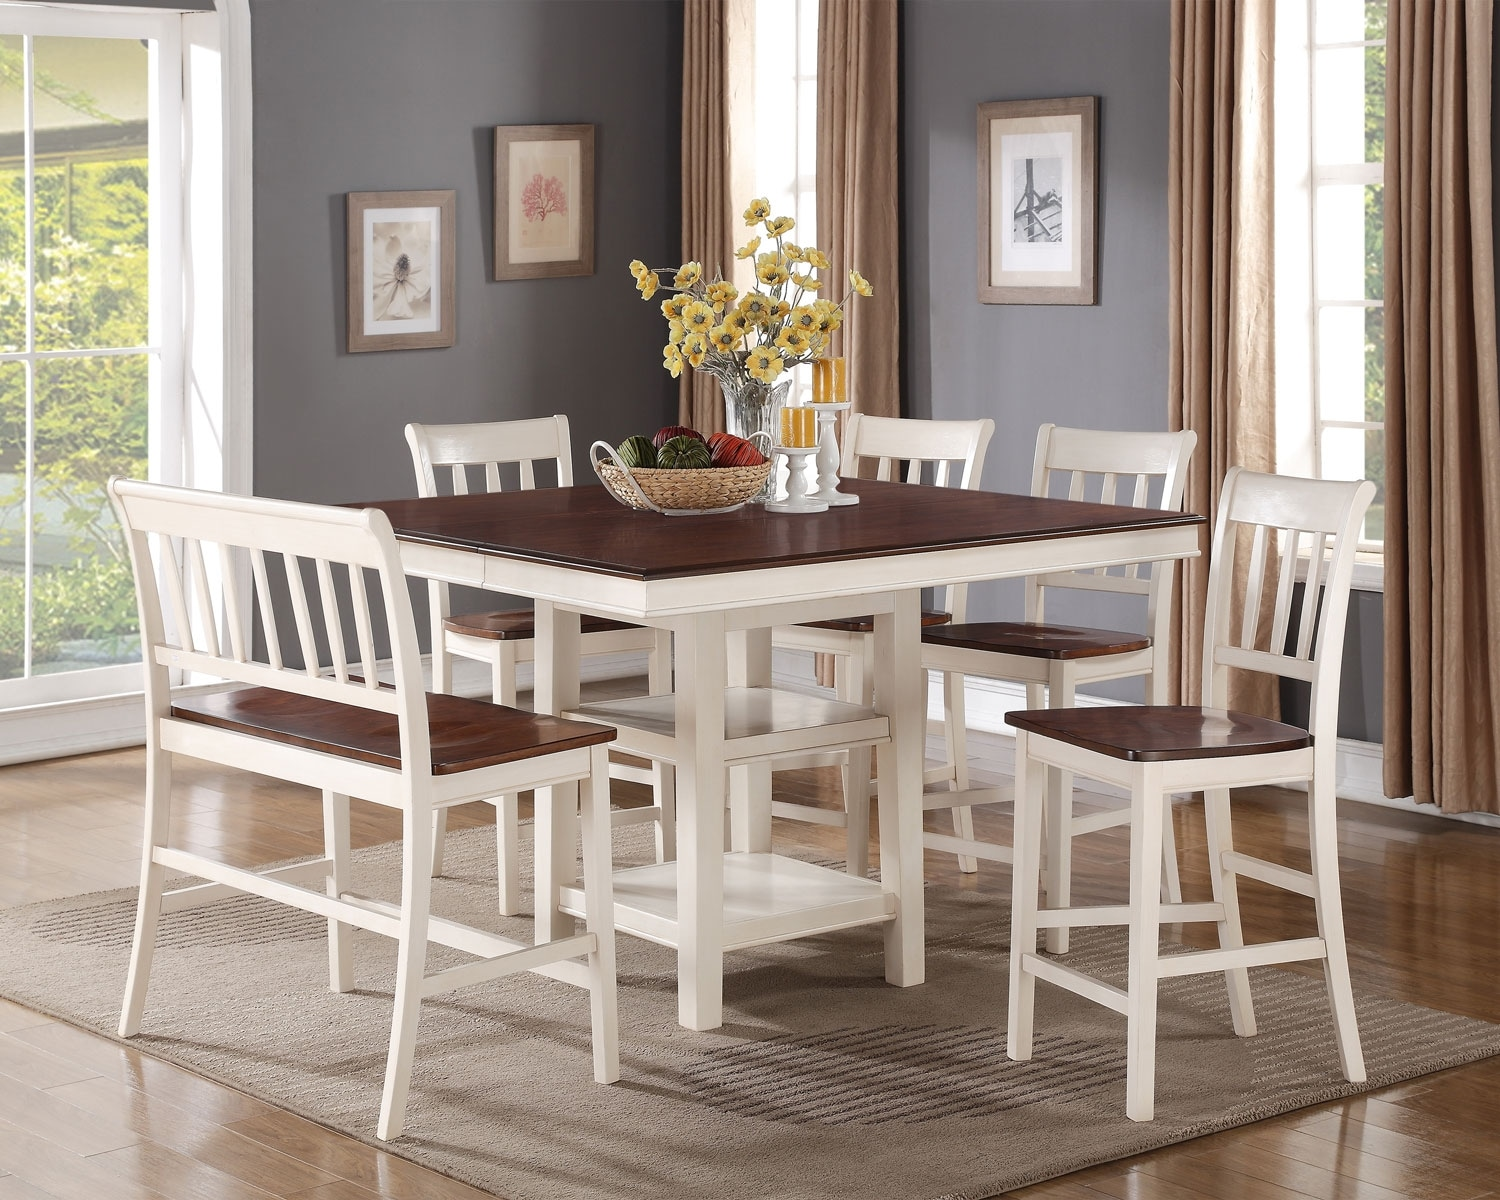 Nyla Counter-Height Dining Table – Antique White and Cherry | The ...